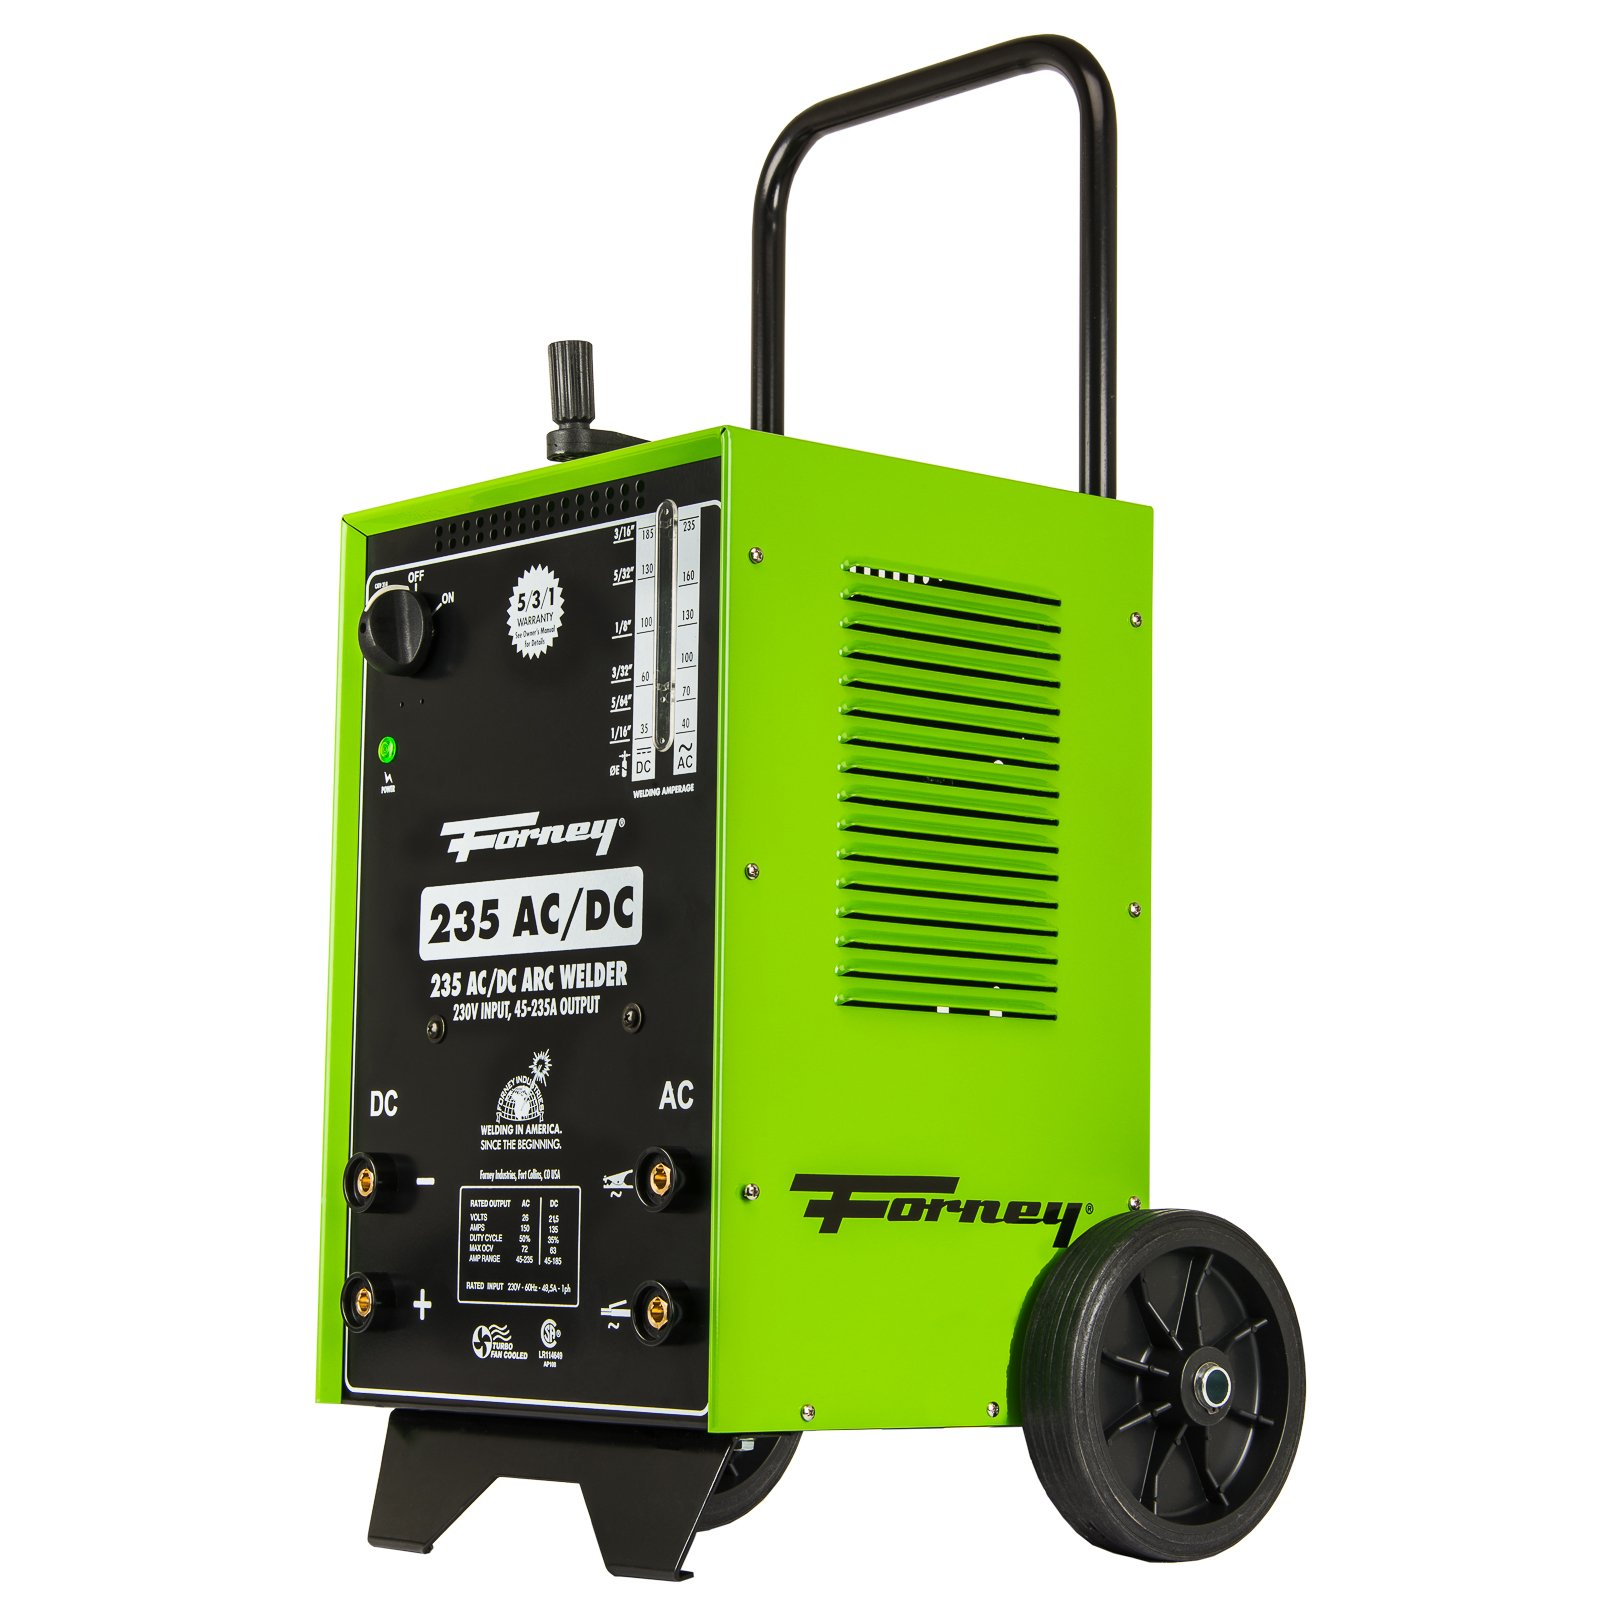 Forney 314 Arc Welder 235FI AC DC, 230-Volt, 230-Amp by Forney (Image #3)